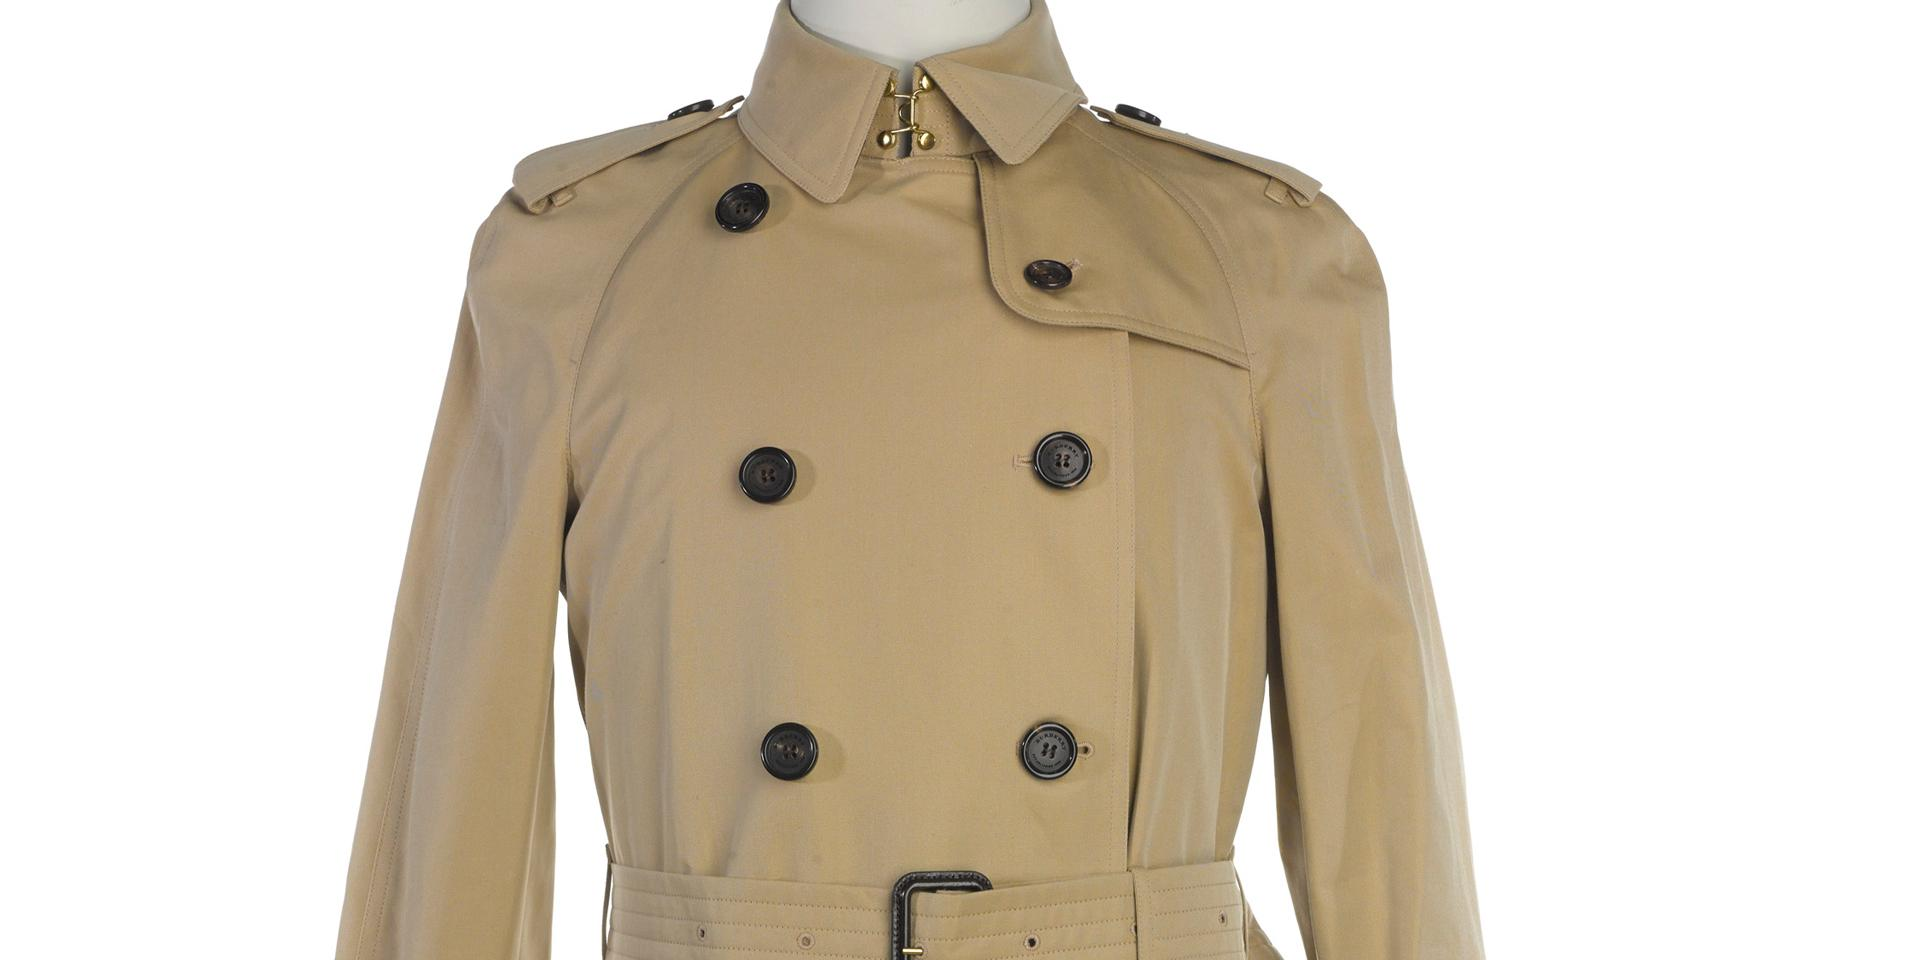 Burberry trenchcoat, 2014